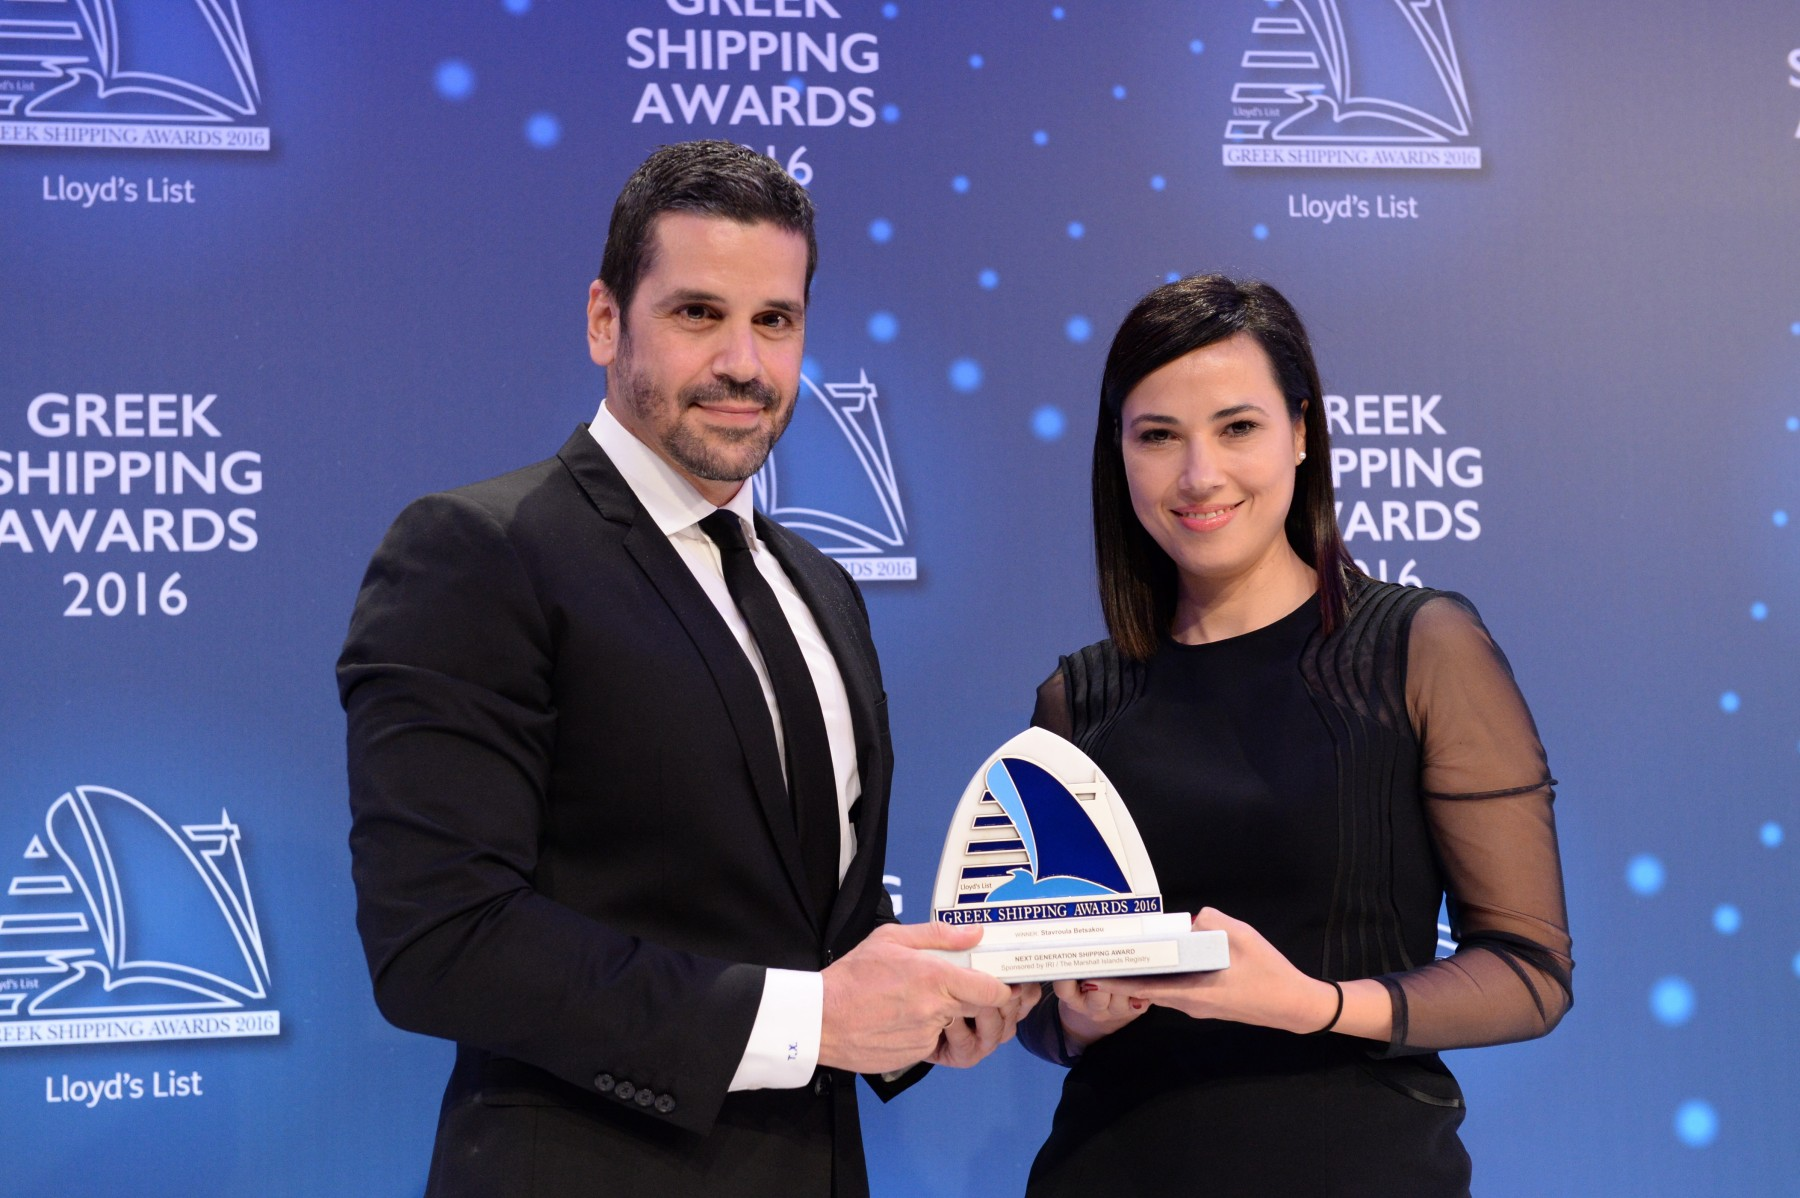 Mr. Theofilos Xenakoudis of sponsor IRI/The Marshall Islands Registry presenting the Next Generation Shipping Award to Ms. Stavroula Betsakou.